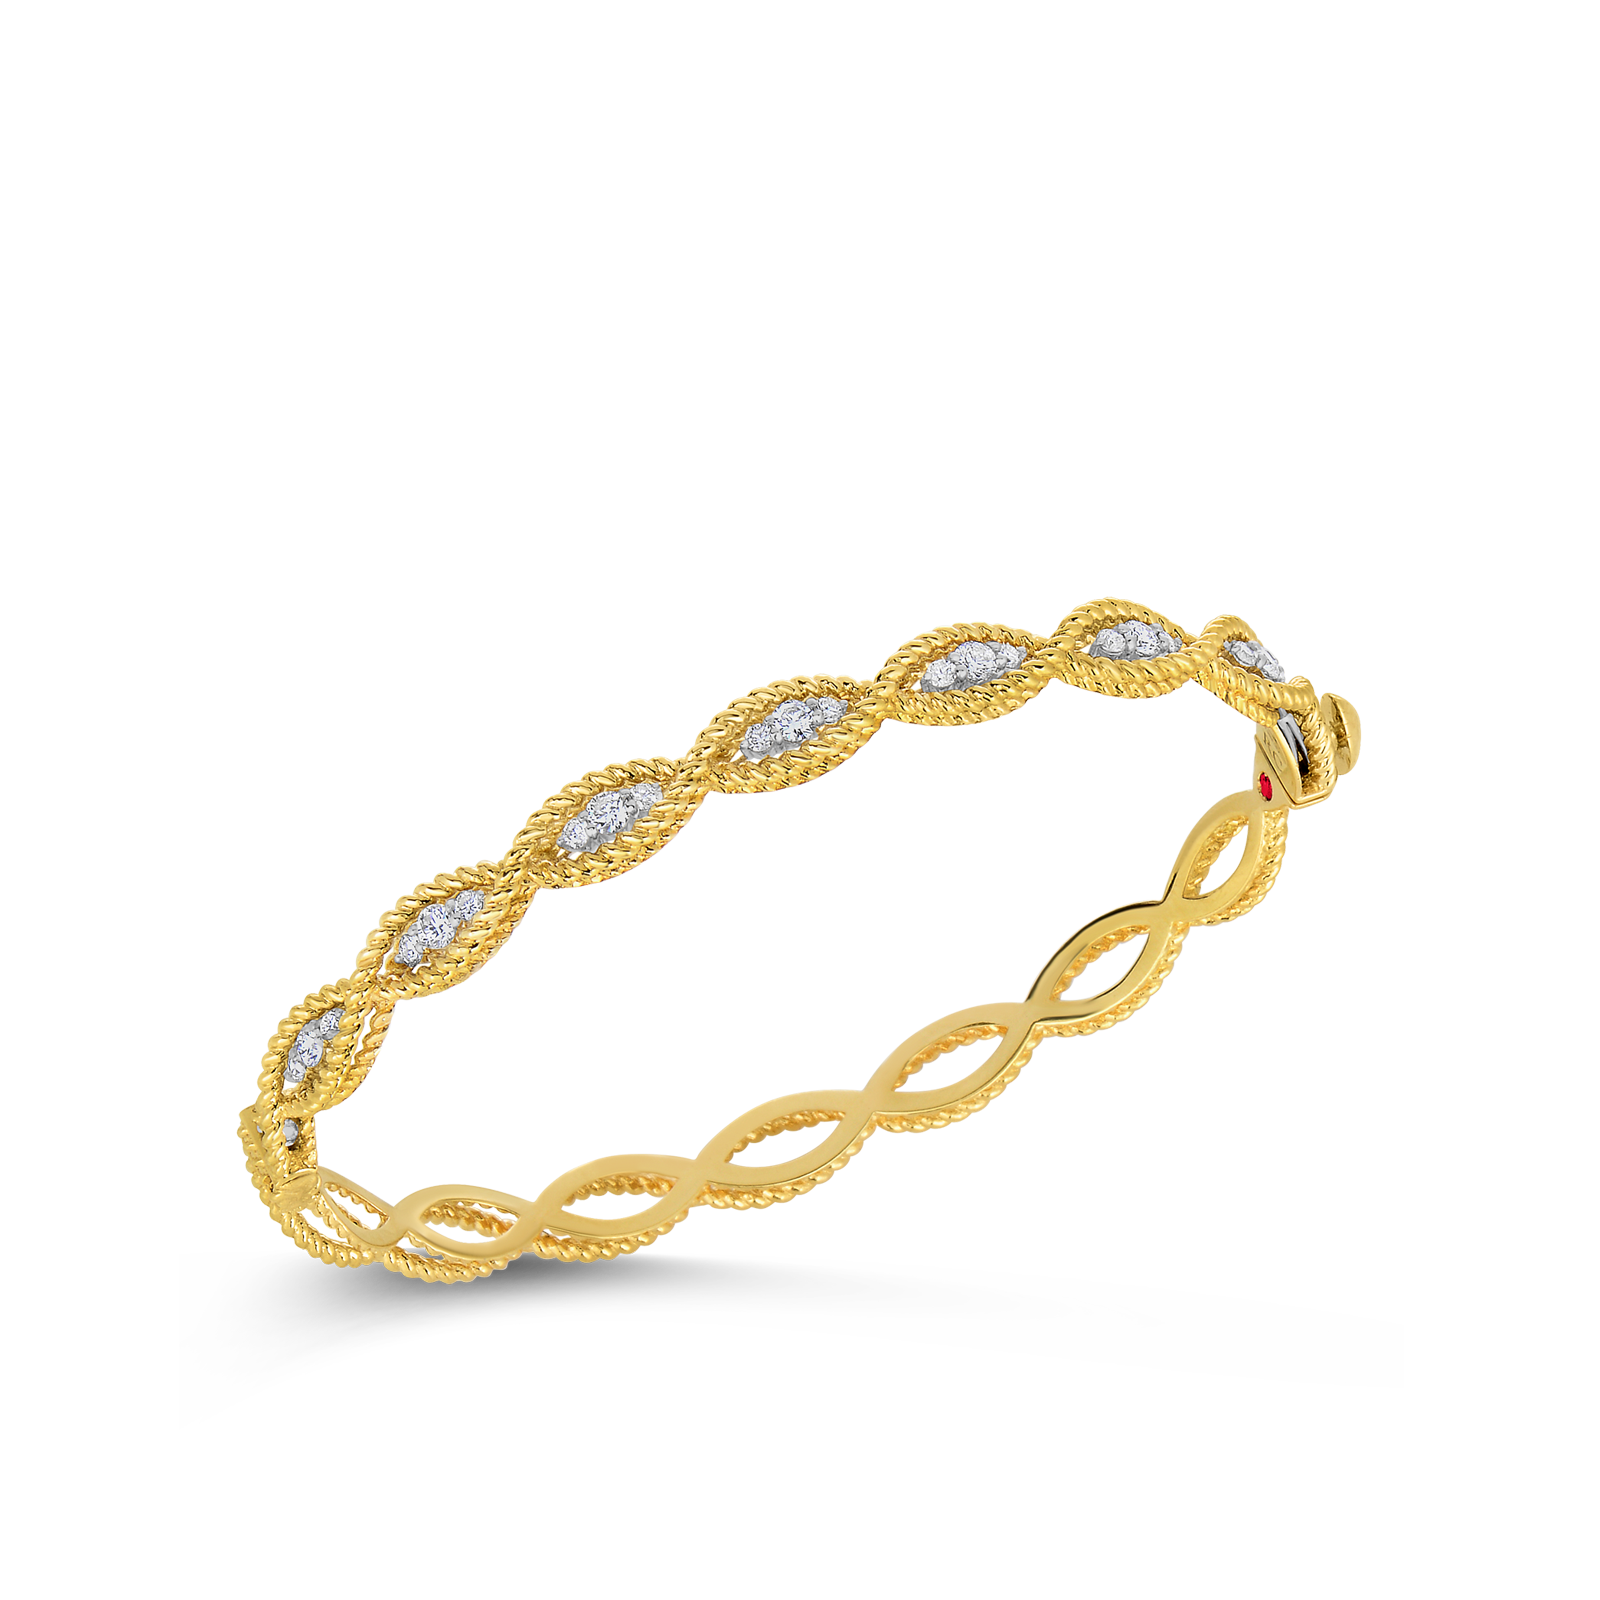 model women anniversary product bracelets party ladies christmas gifts for gold type zircon champagne valentine popular girl and bangle bracelet double diamond jewelry bangles